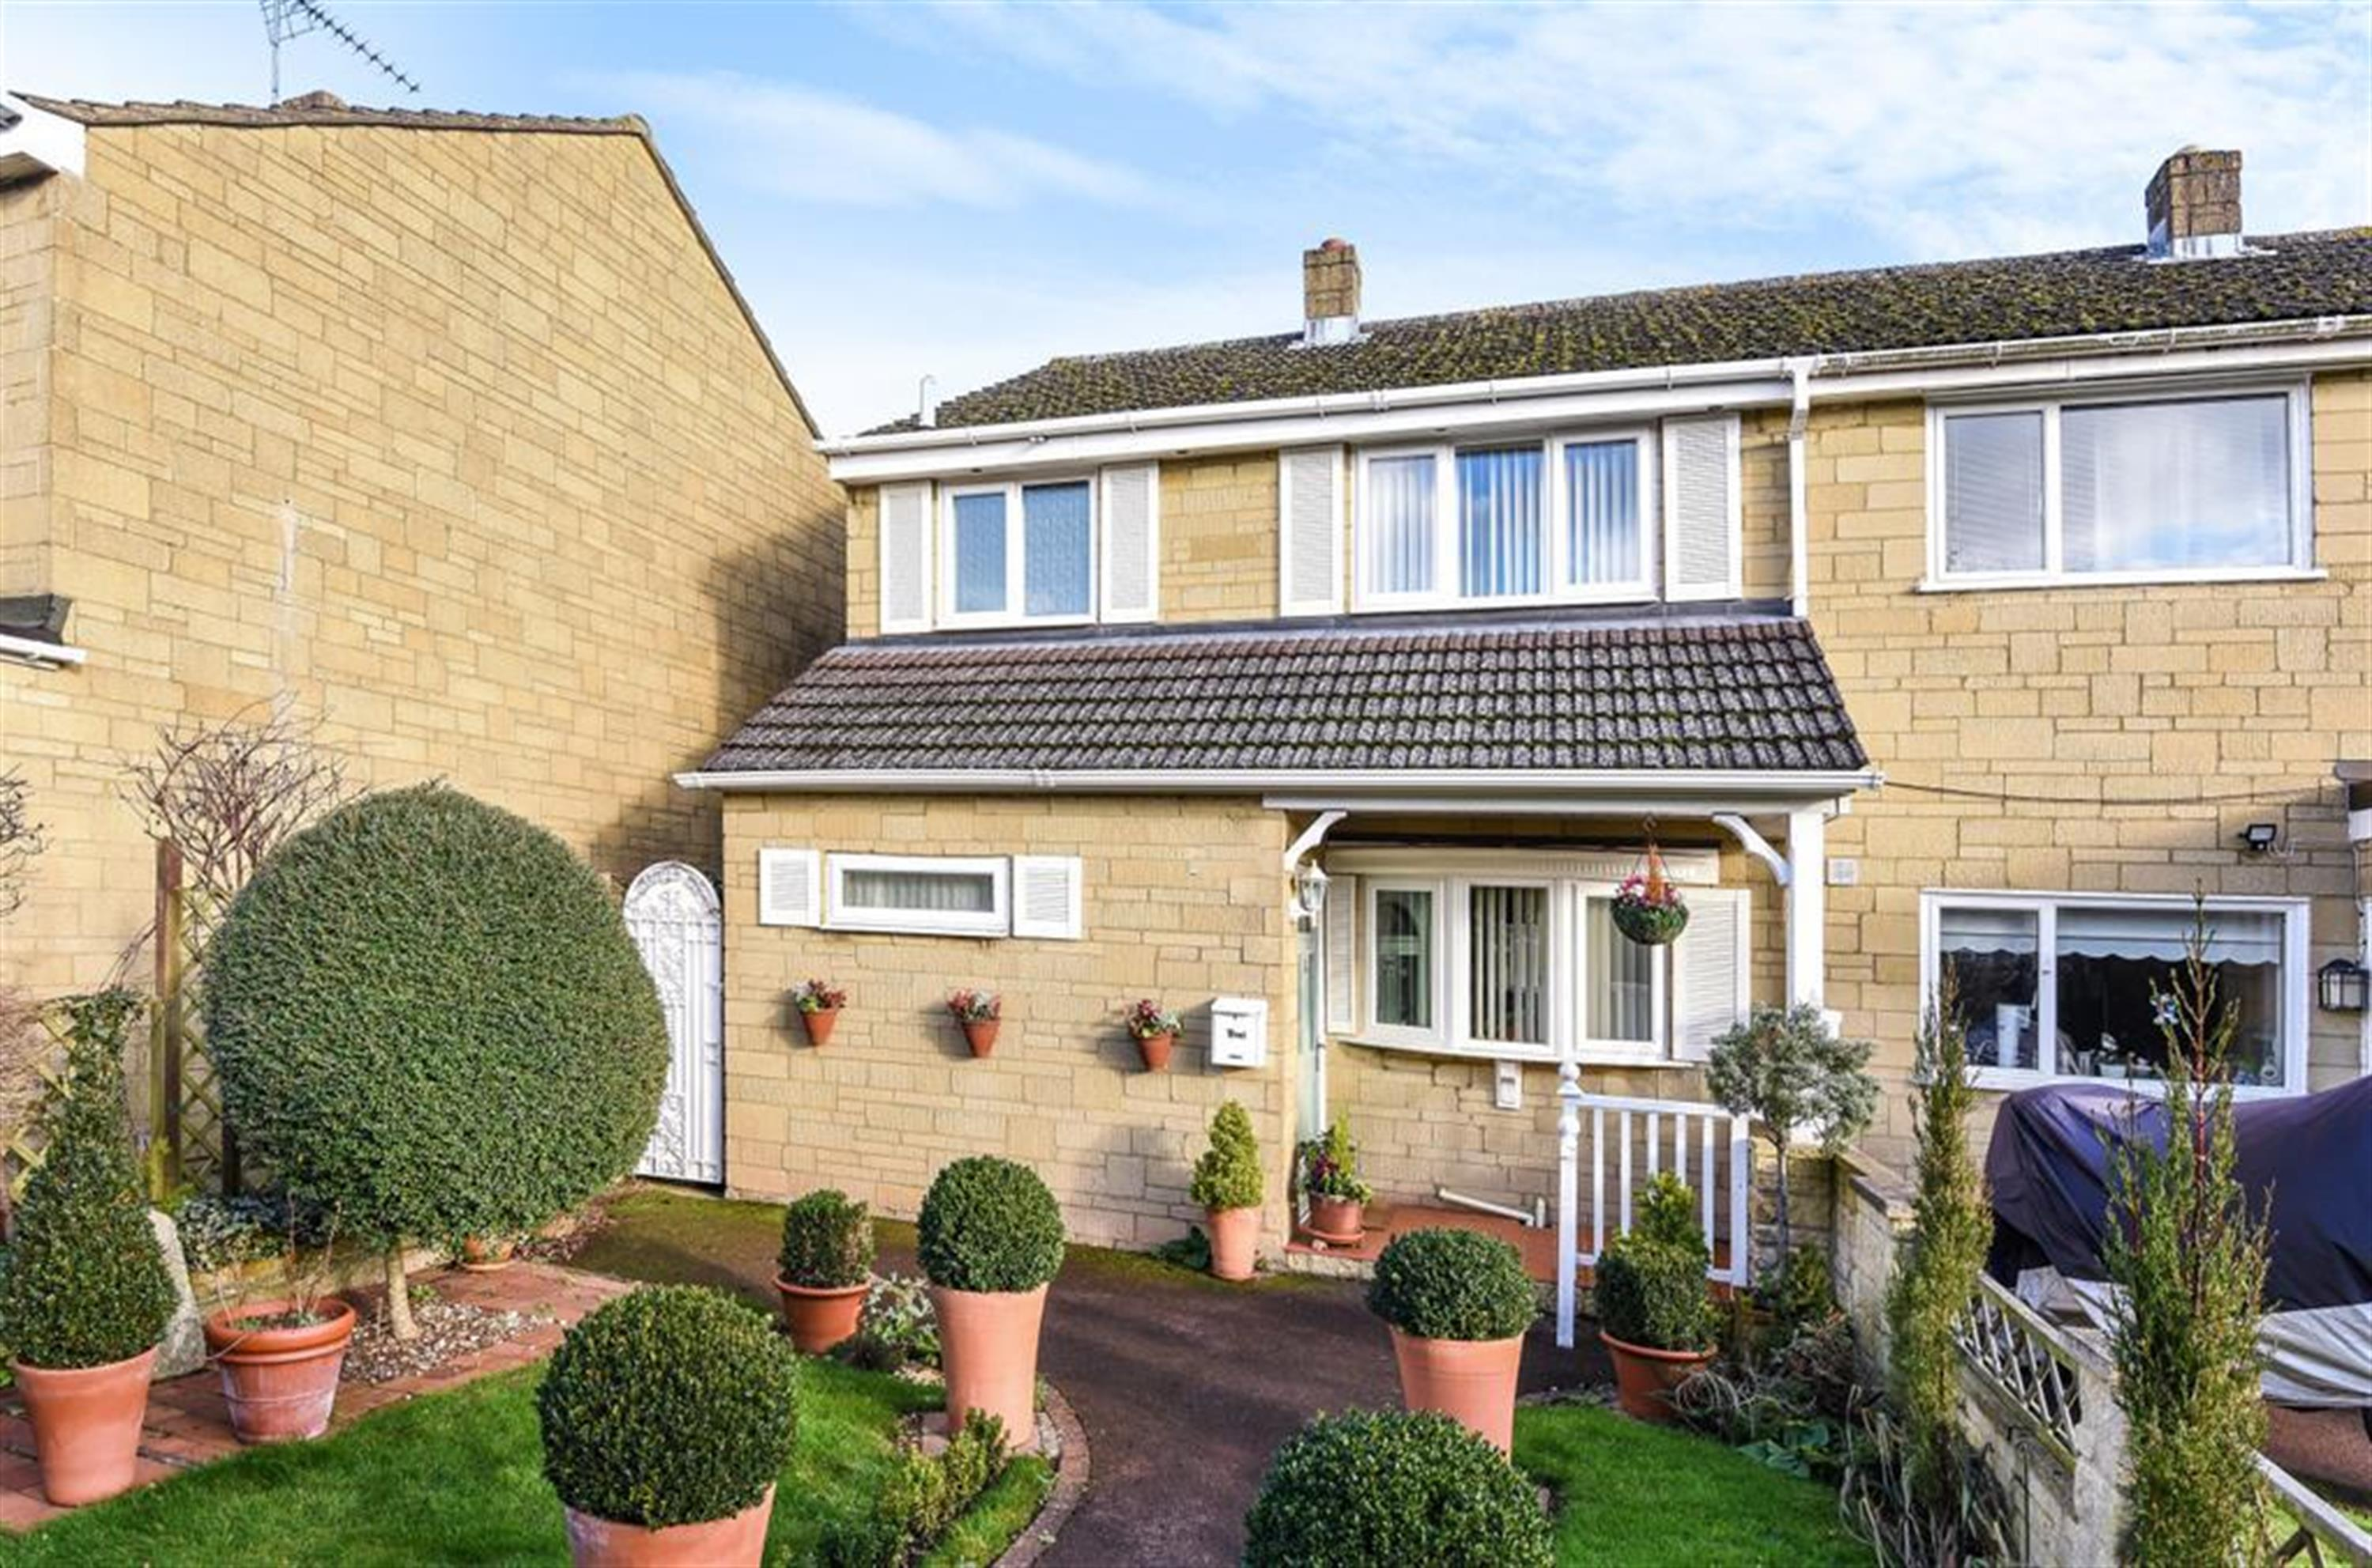 Finchdale Close, Carterton, OX18 3BT